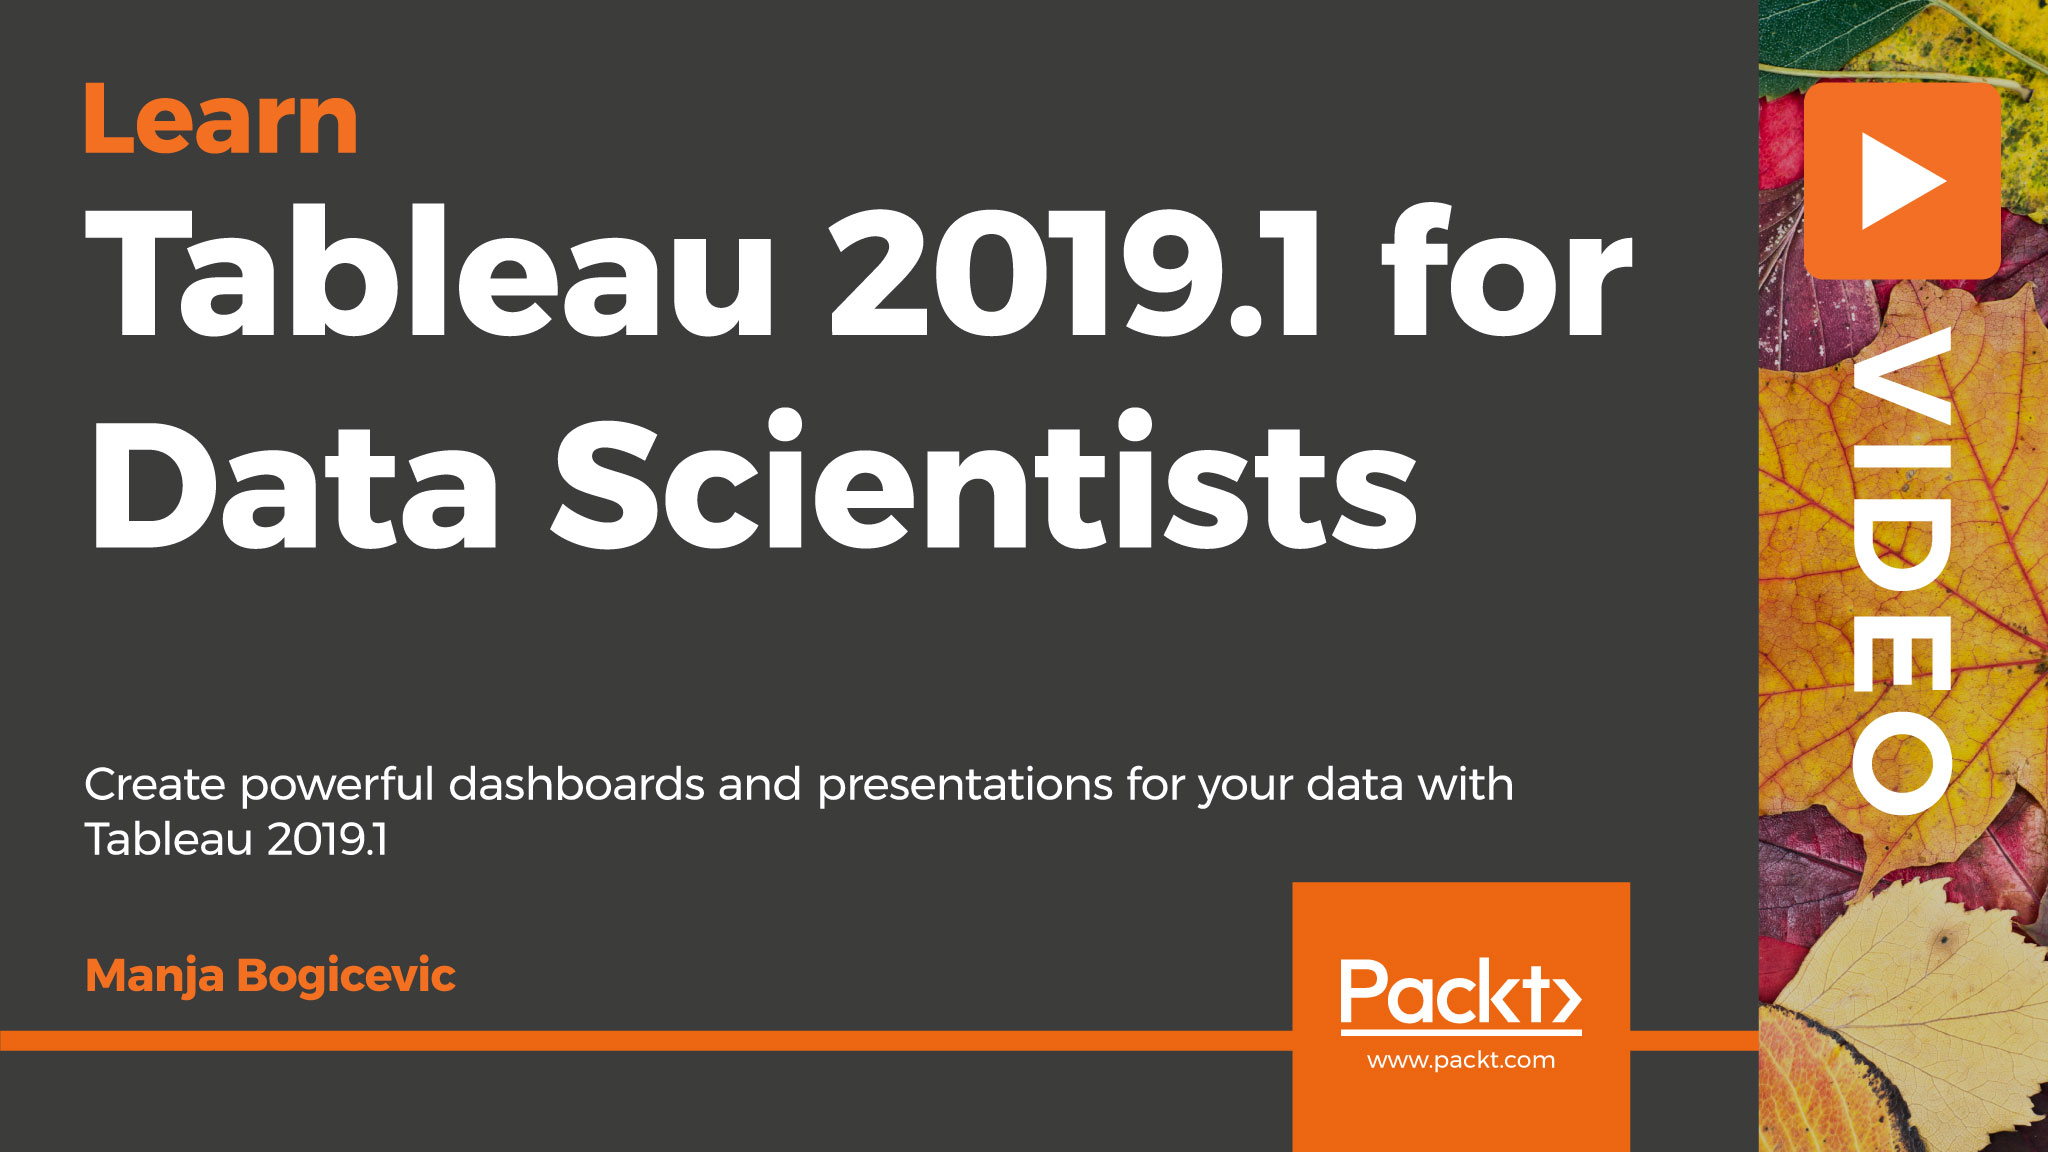 Tableau 2019. 1 for Data Scientists